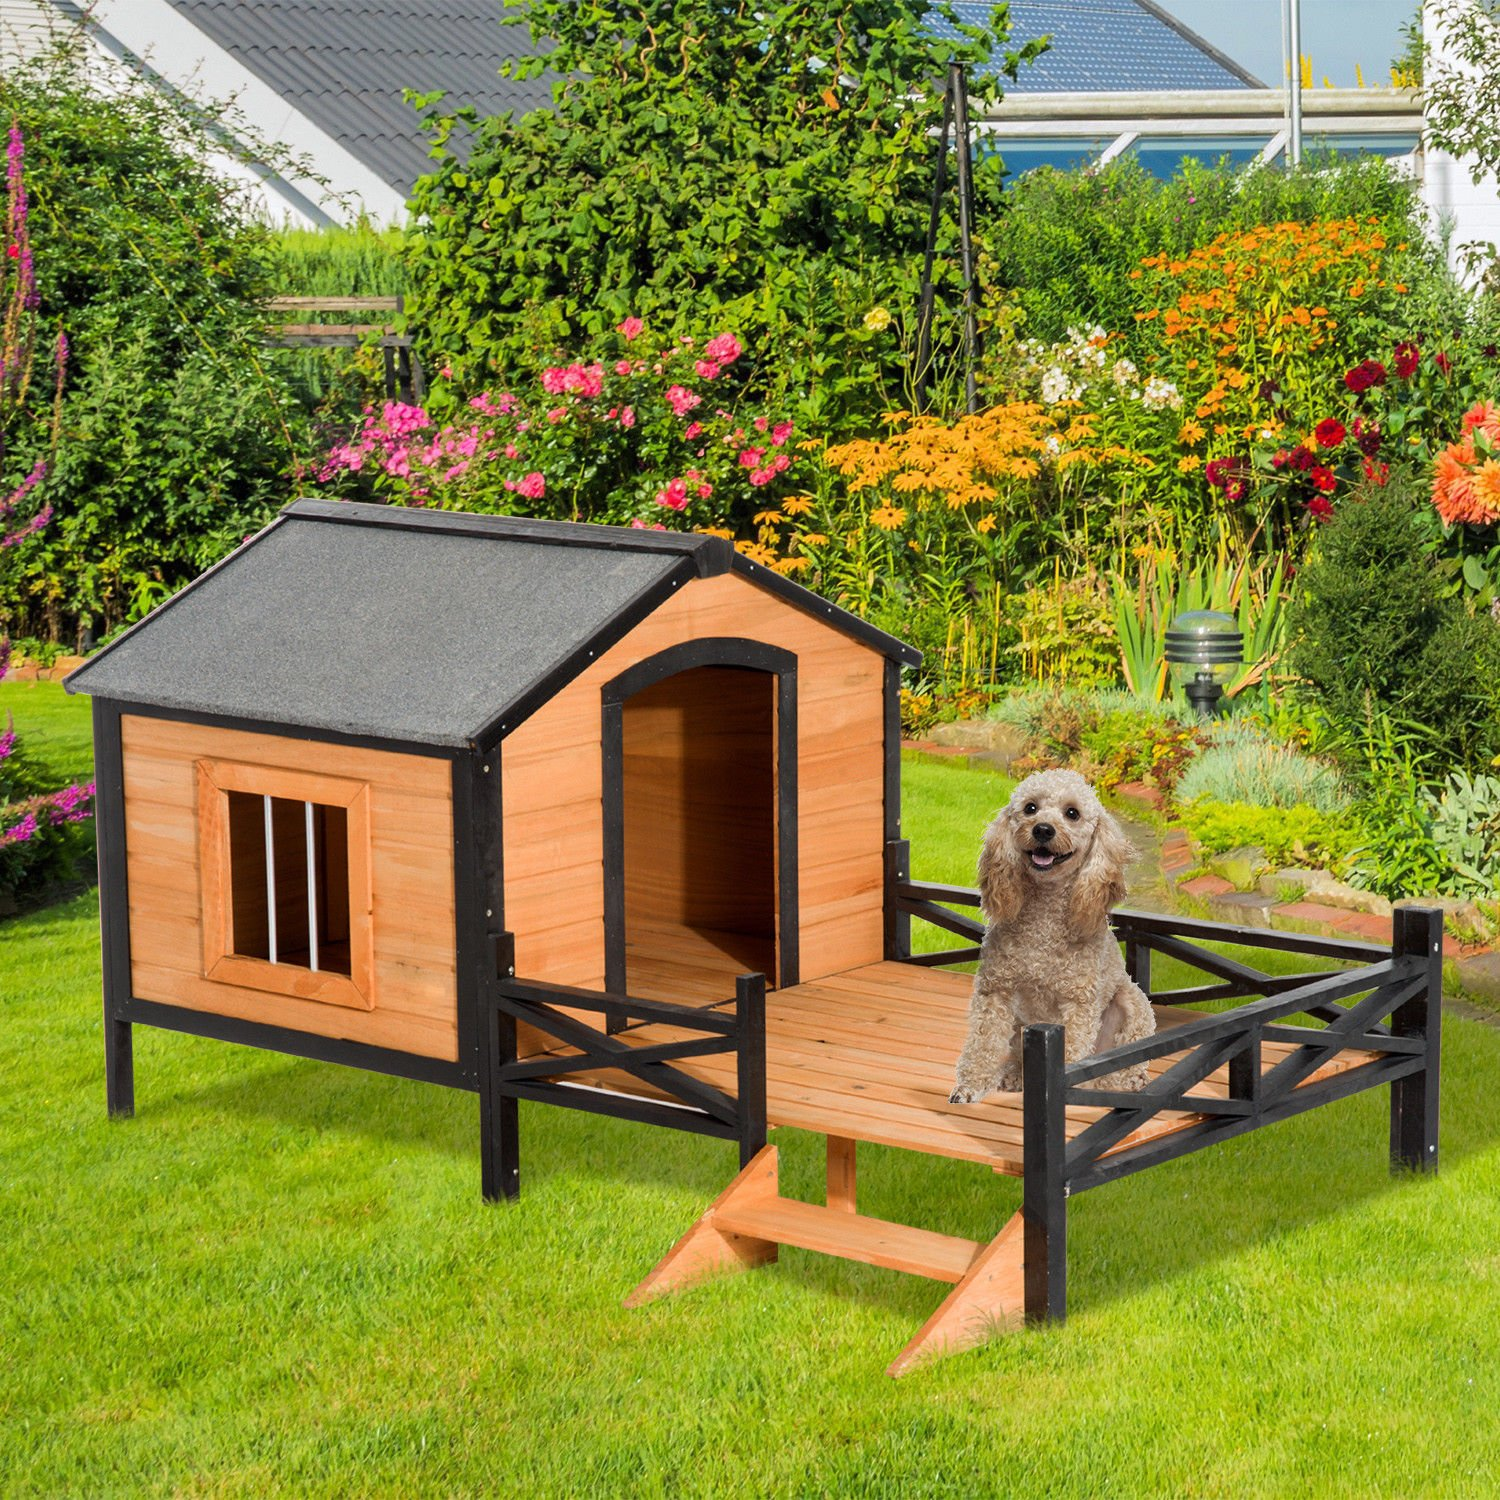 PawHut 67'' Large Wooden Cabin Style Elevated Outdoor Dog House with Porch by PawHut (Image #2)